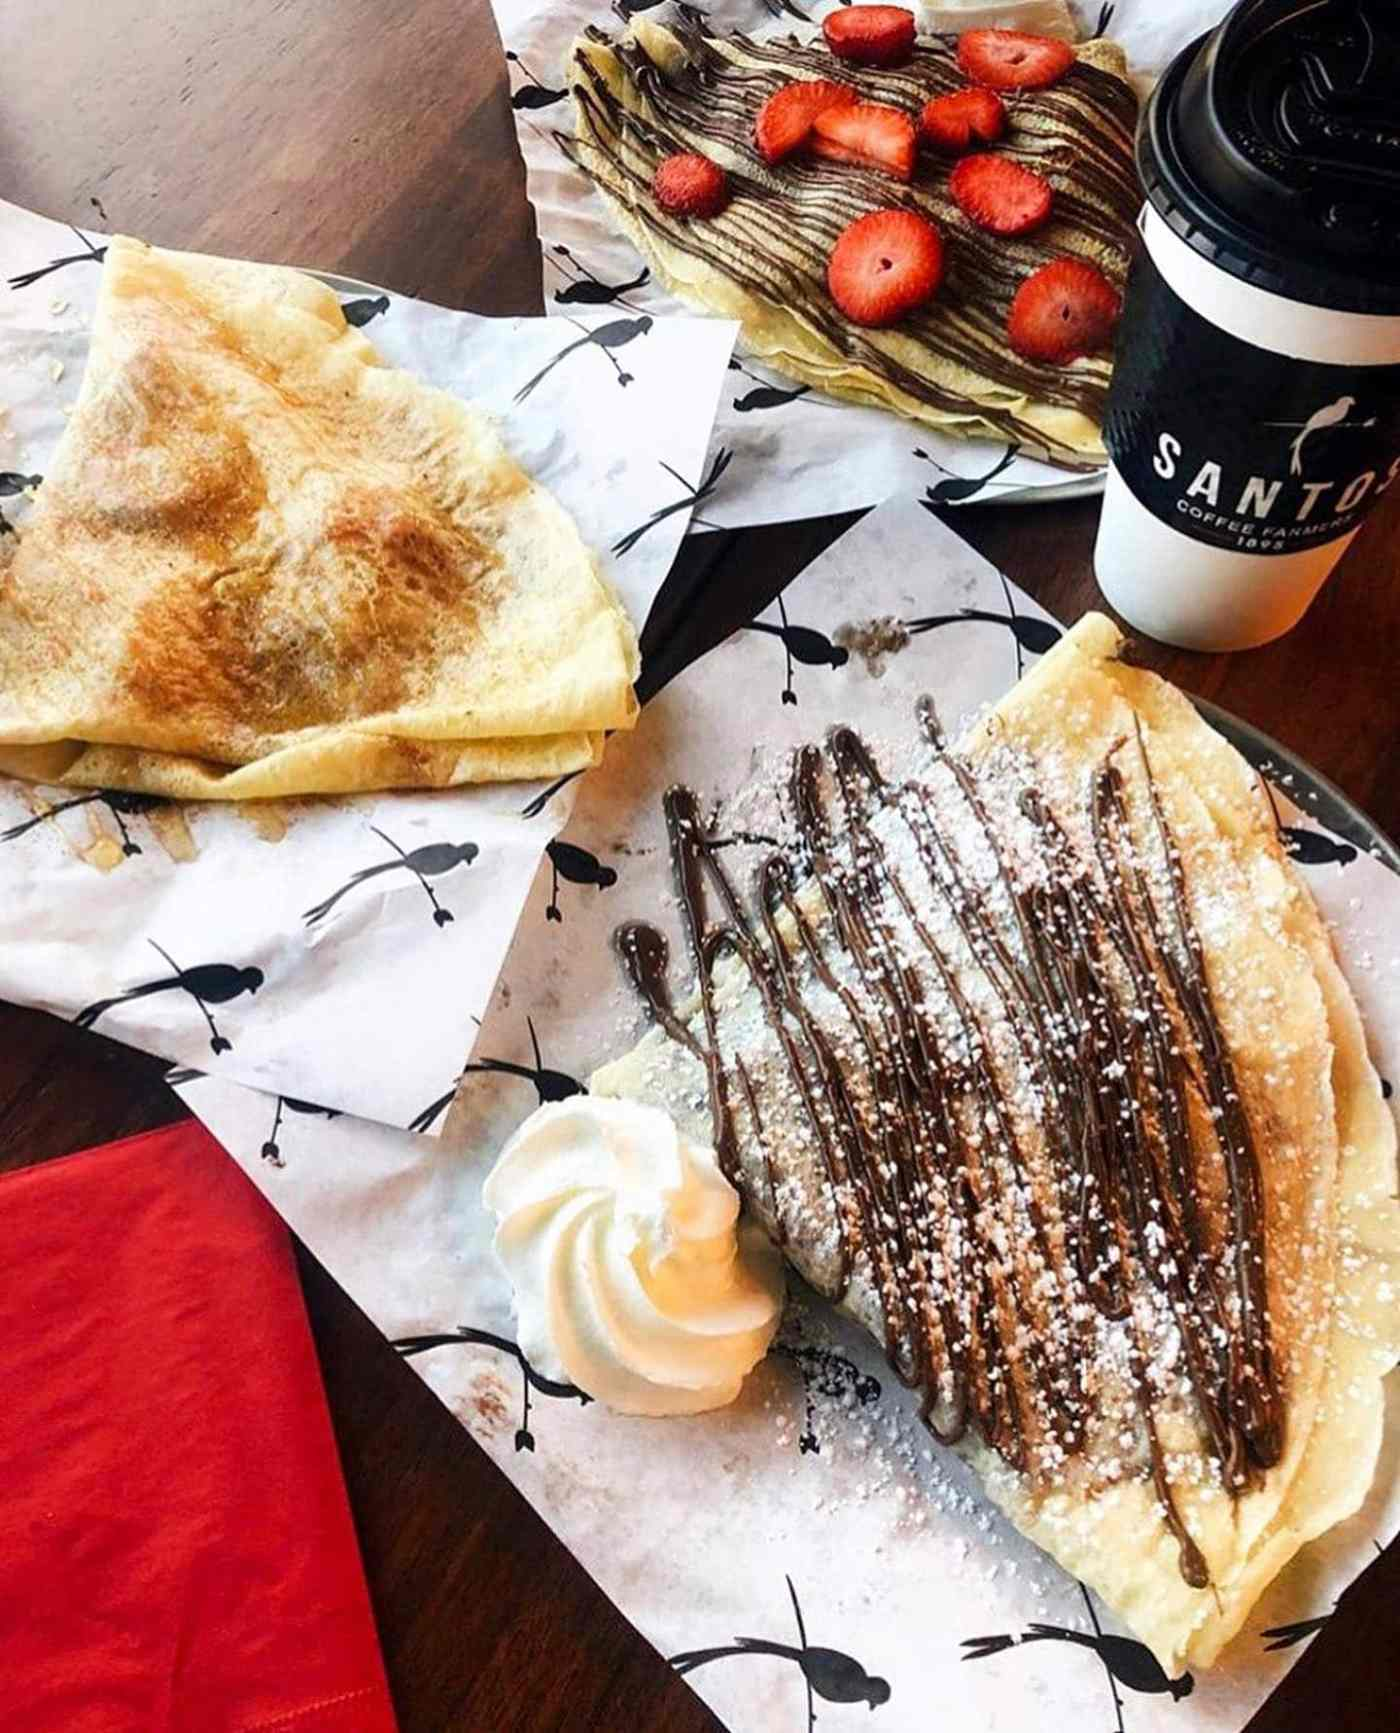 Sweet crepes with chocolate drizzle from Santos Coffee